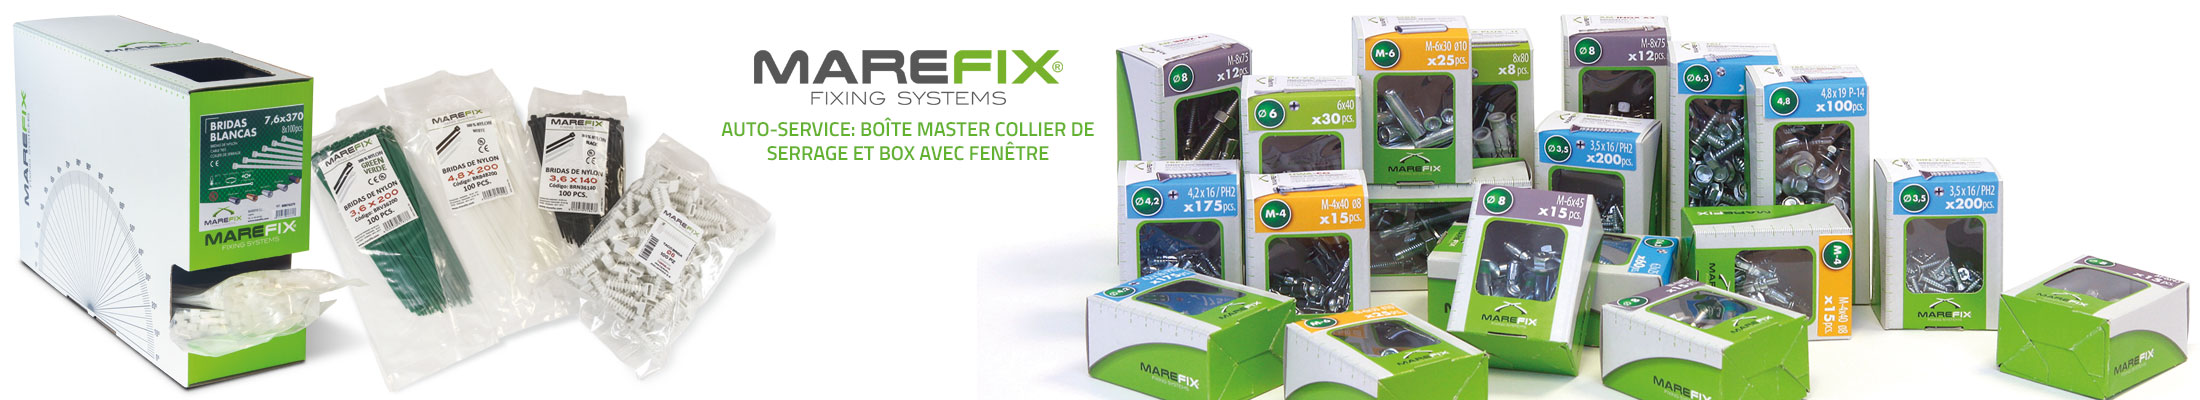 MAREFIX, FIXING SYSTEMS